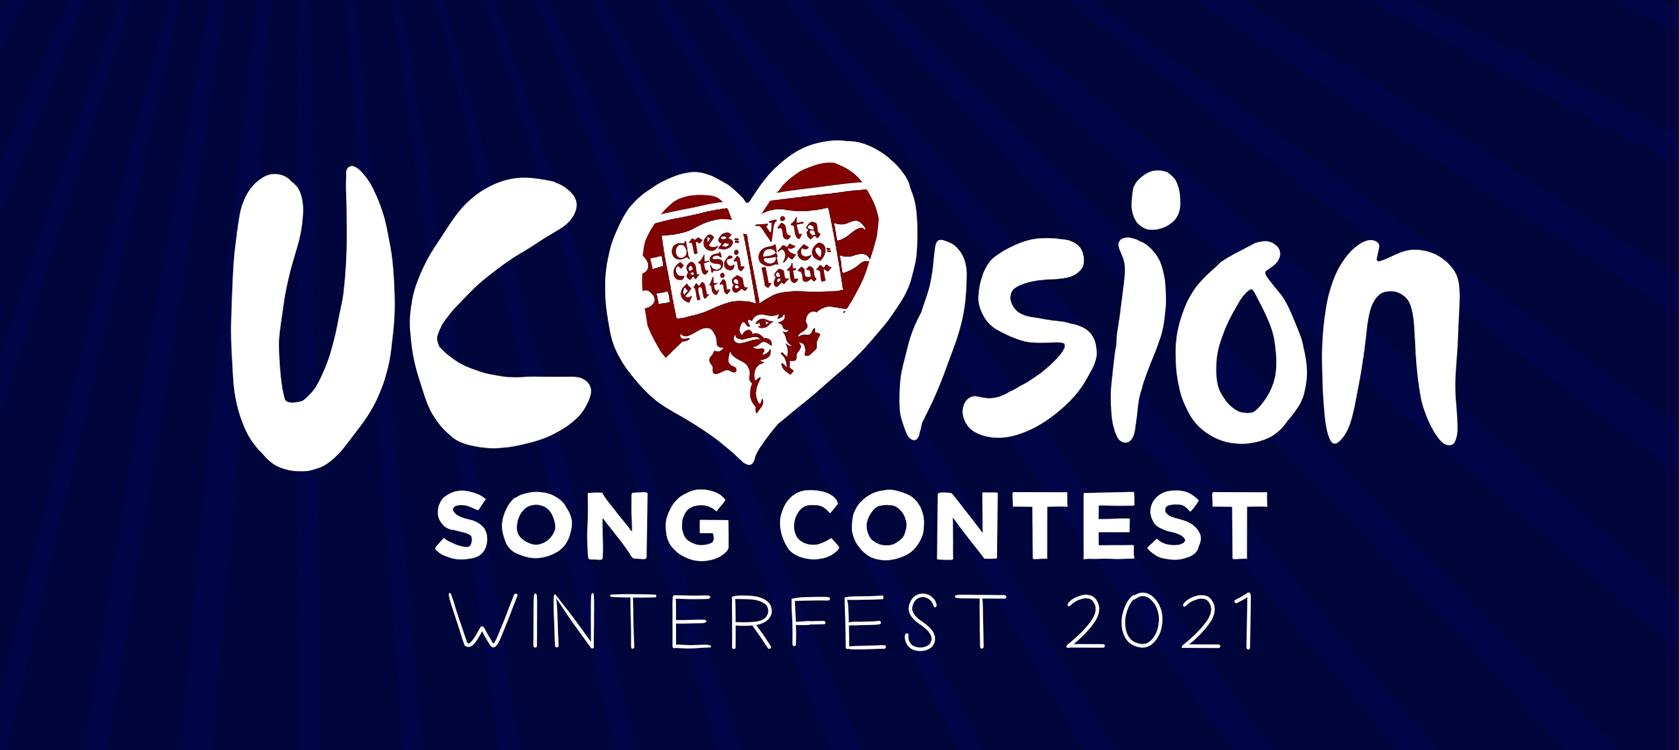 UCVision Song Contest